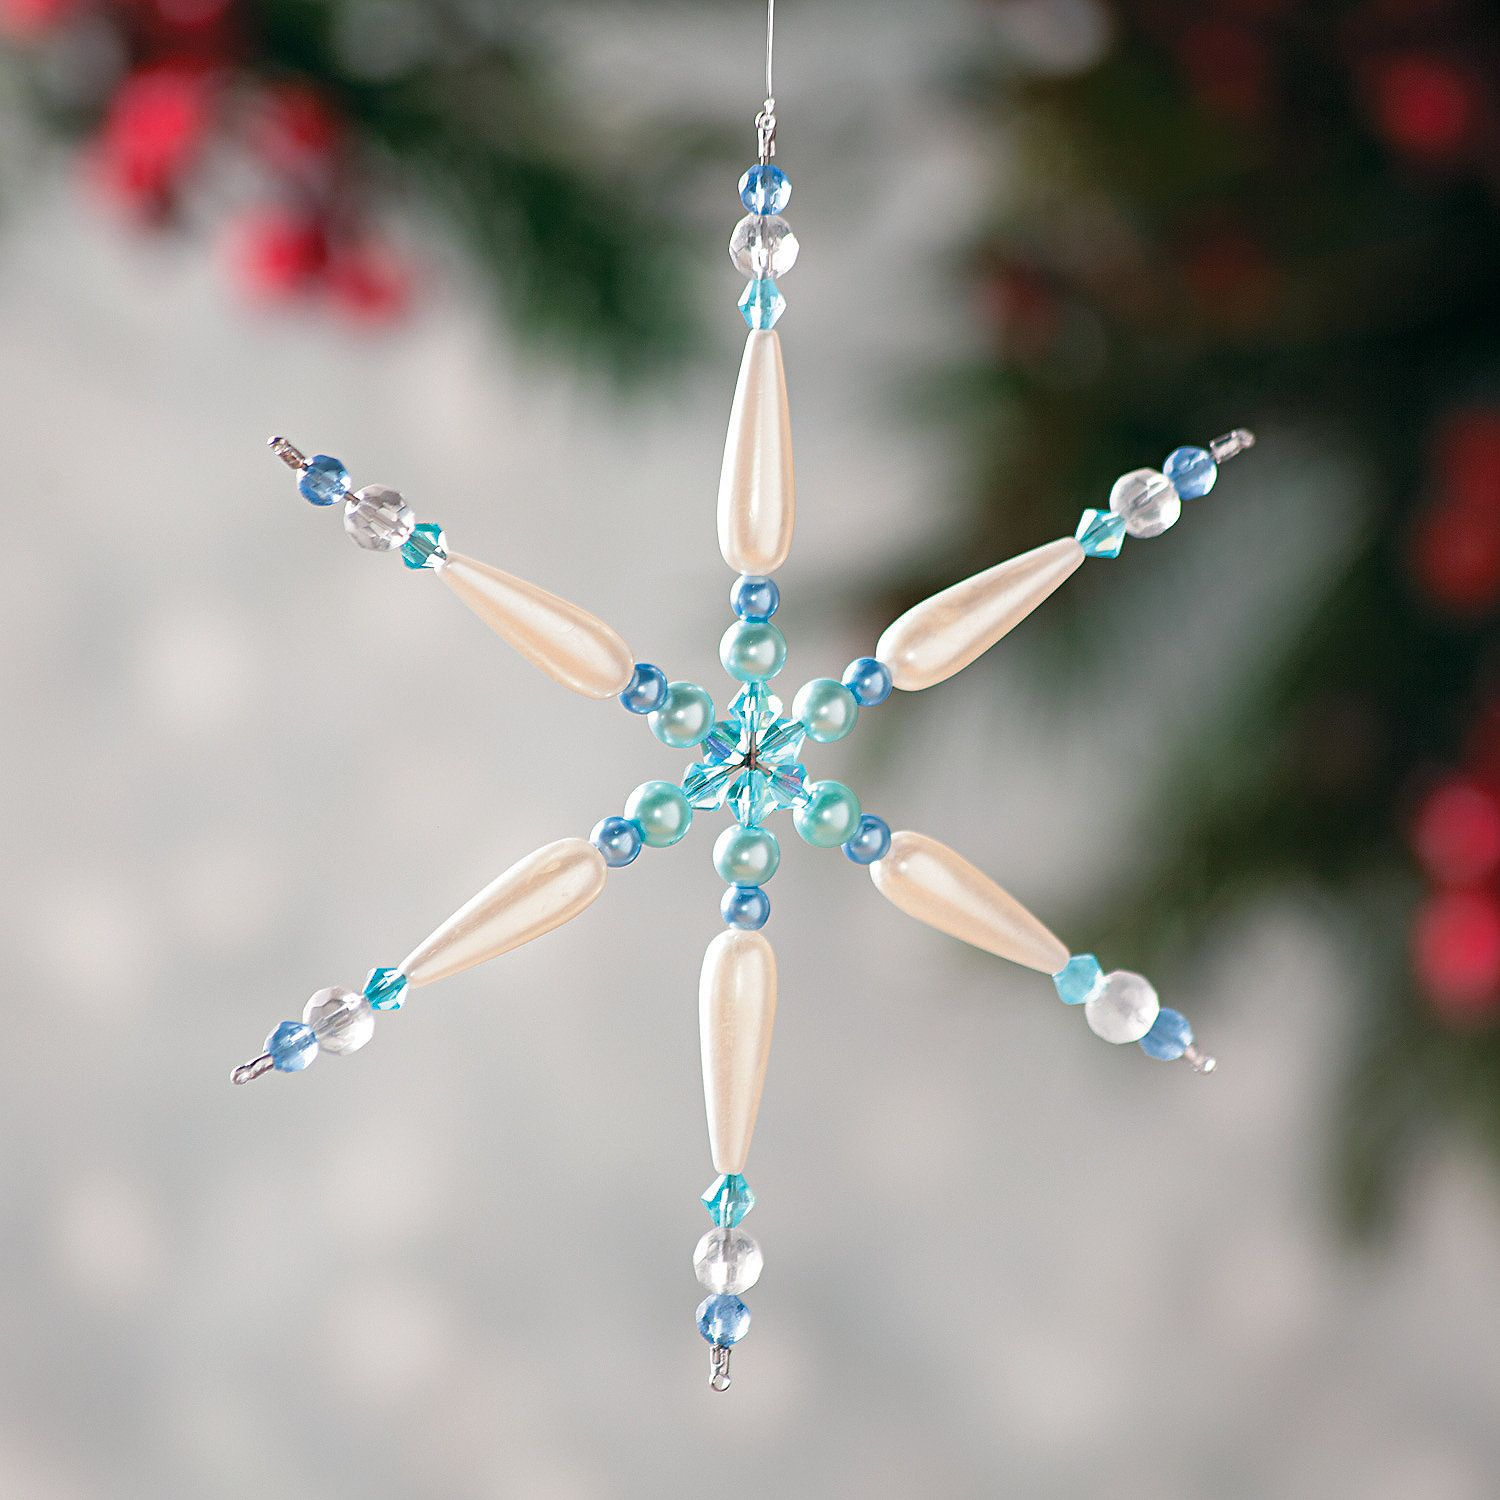 Beaded Wire Snowflake Wire Ornaments Snowflakes Winter Crafts